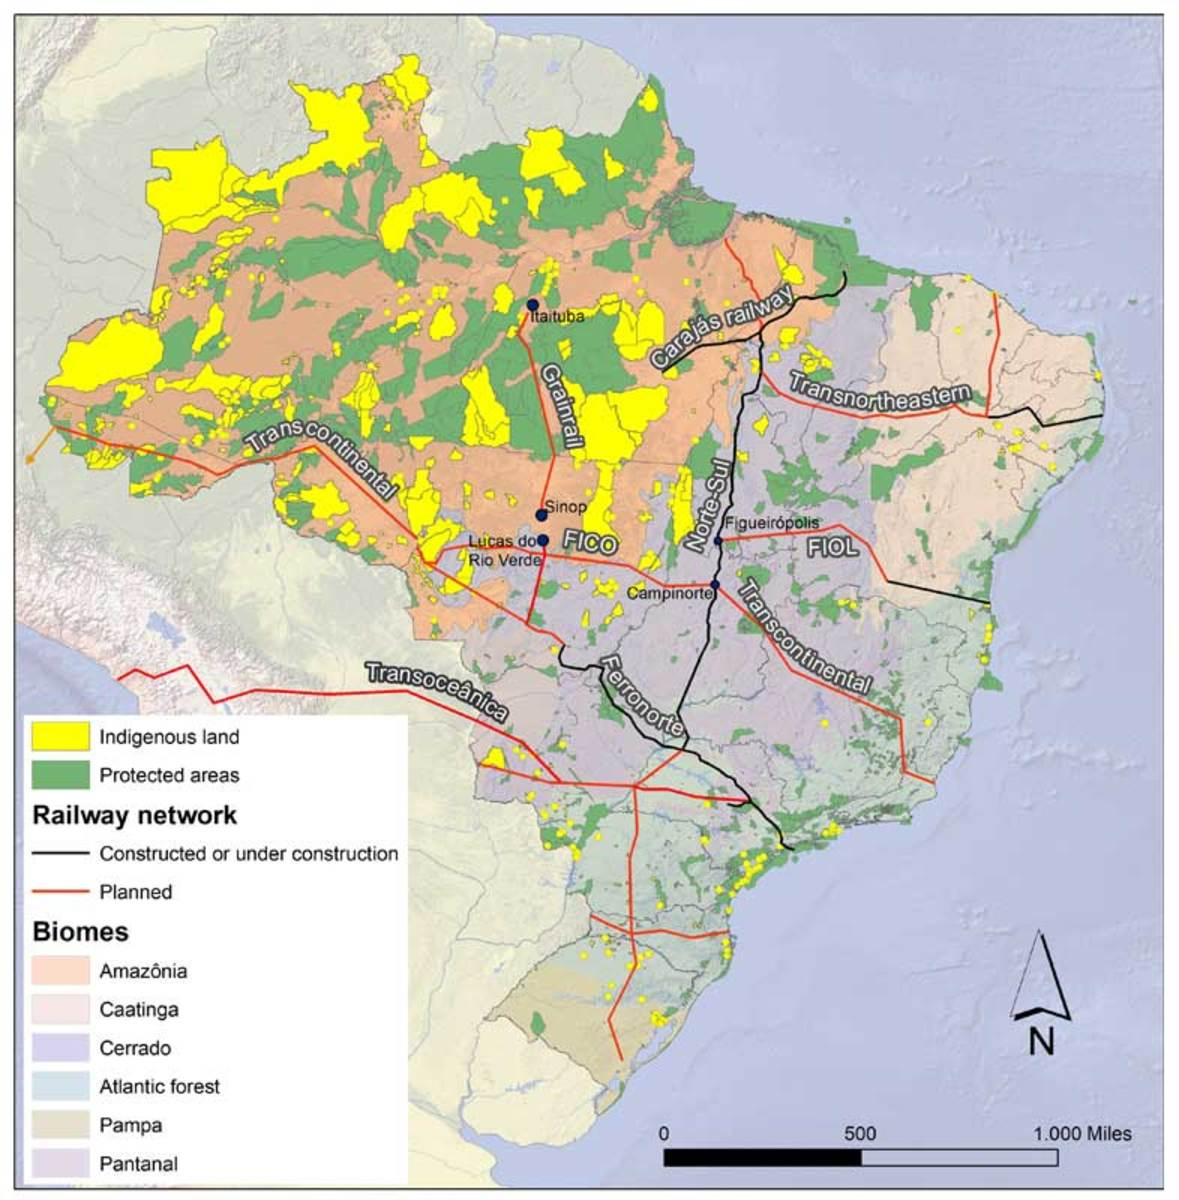 A map of major proposed and existing Brazilian railways, protected areas, indigenous lands, and biomes.